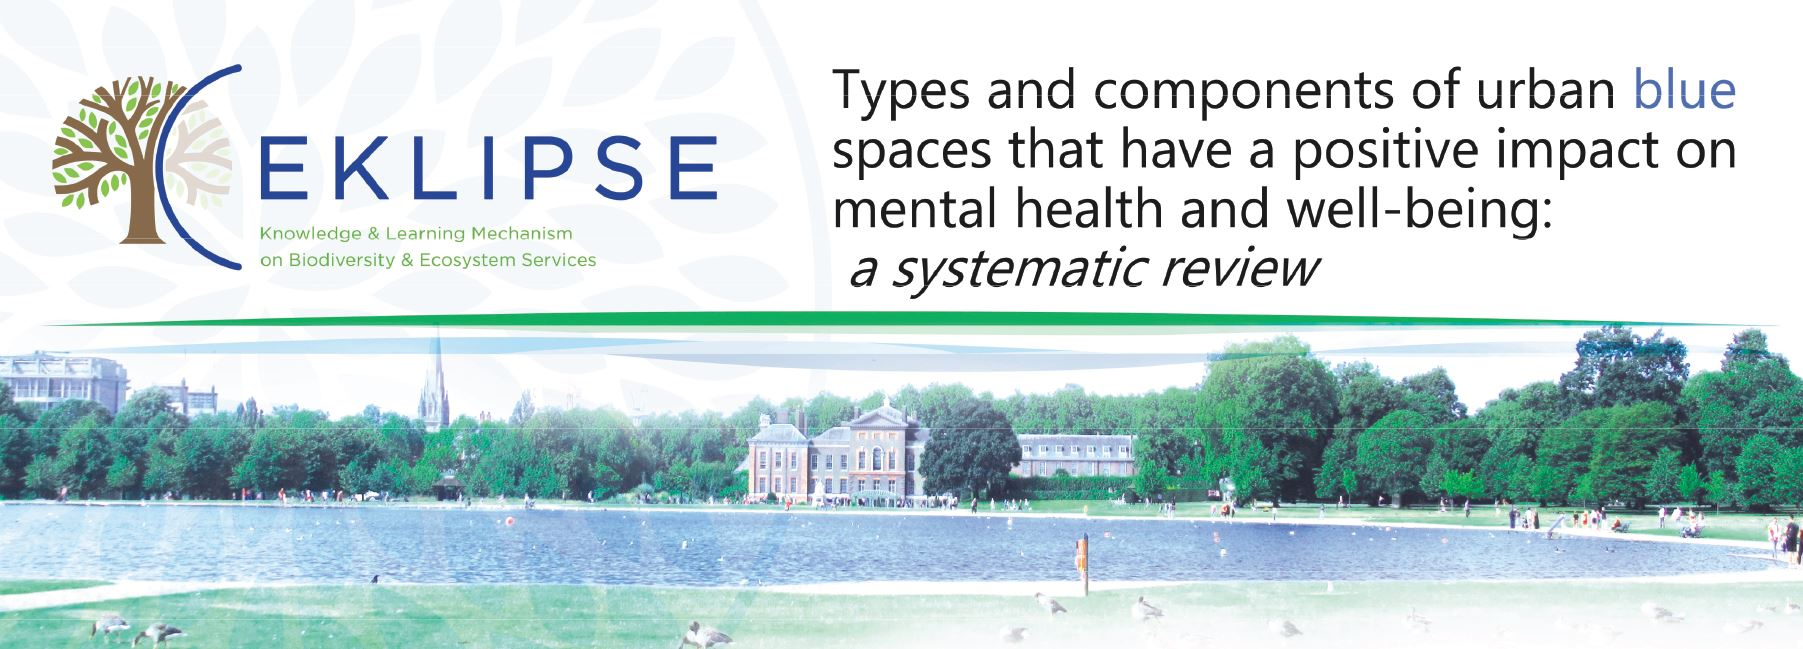 Blue space and mental health report out for review!